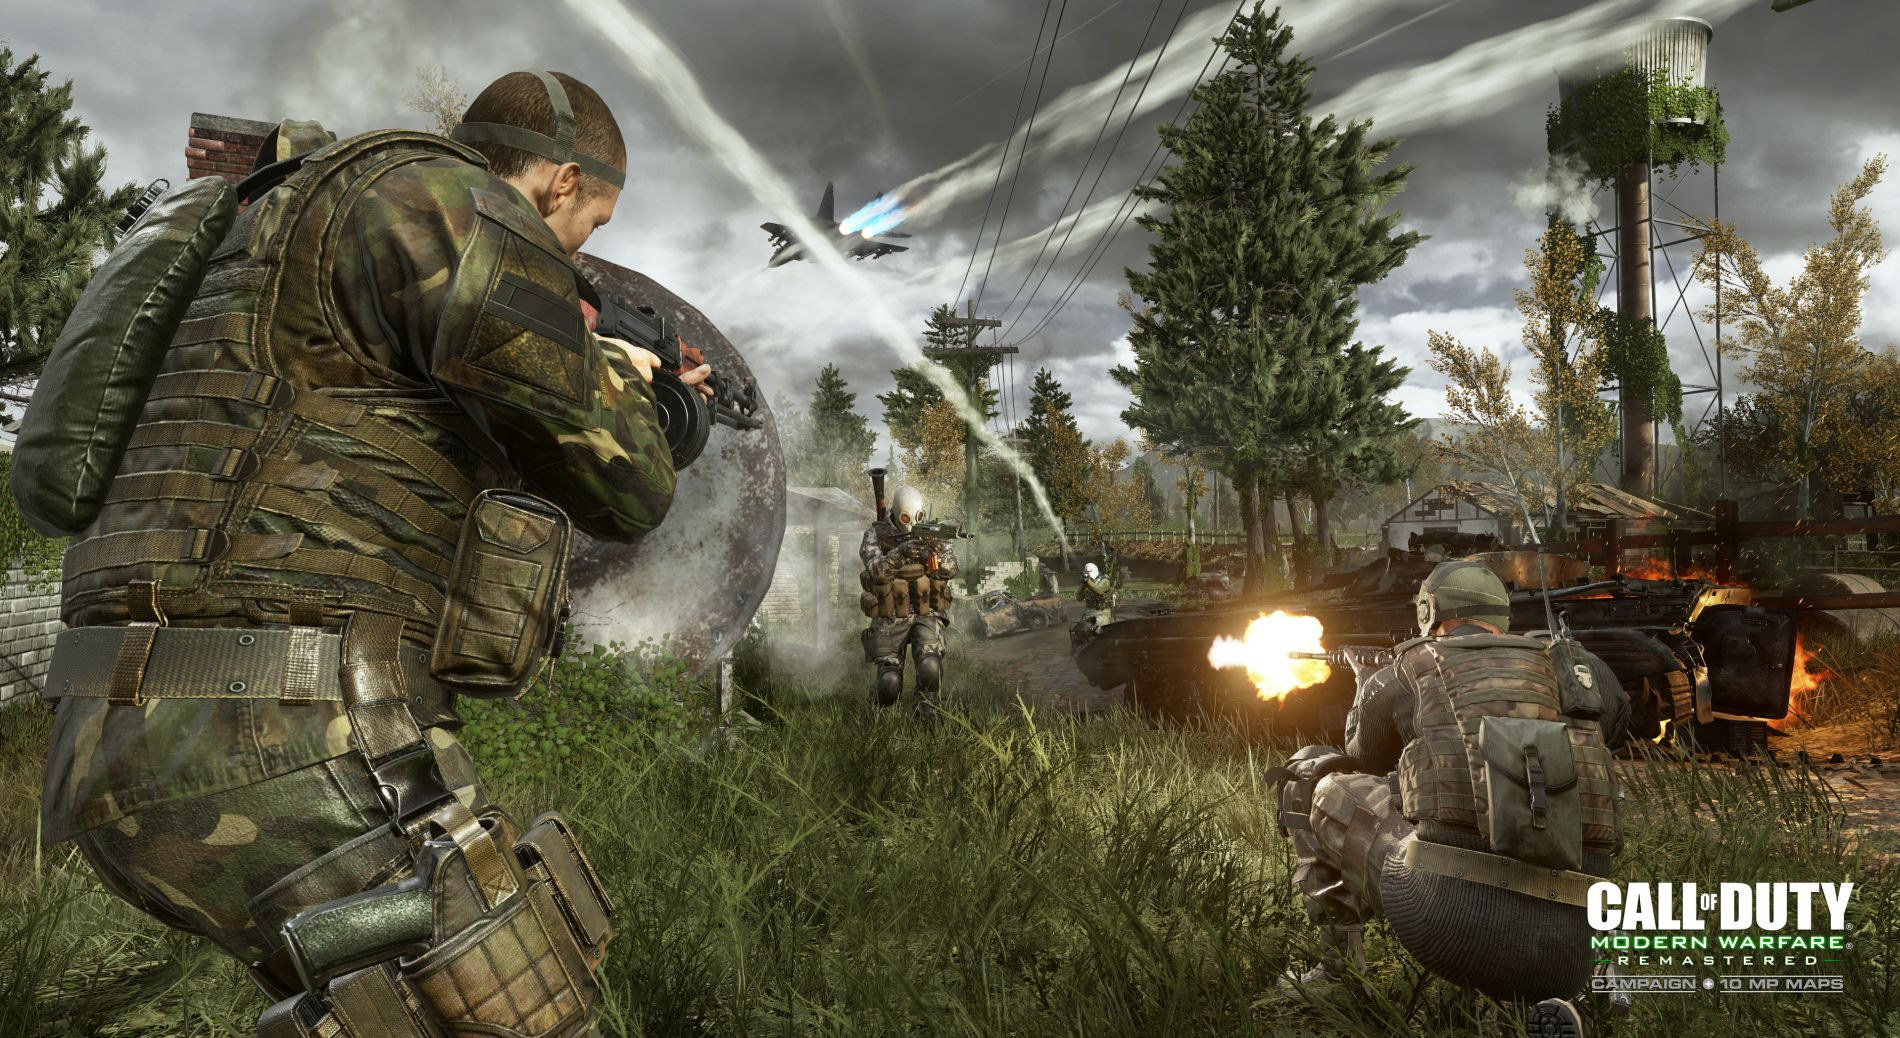 call-of-duty-modern-warfare-remastered-multiplater-maps